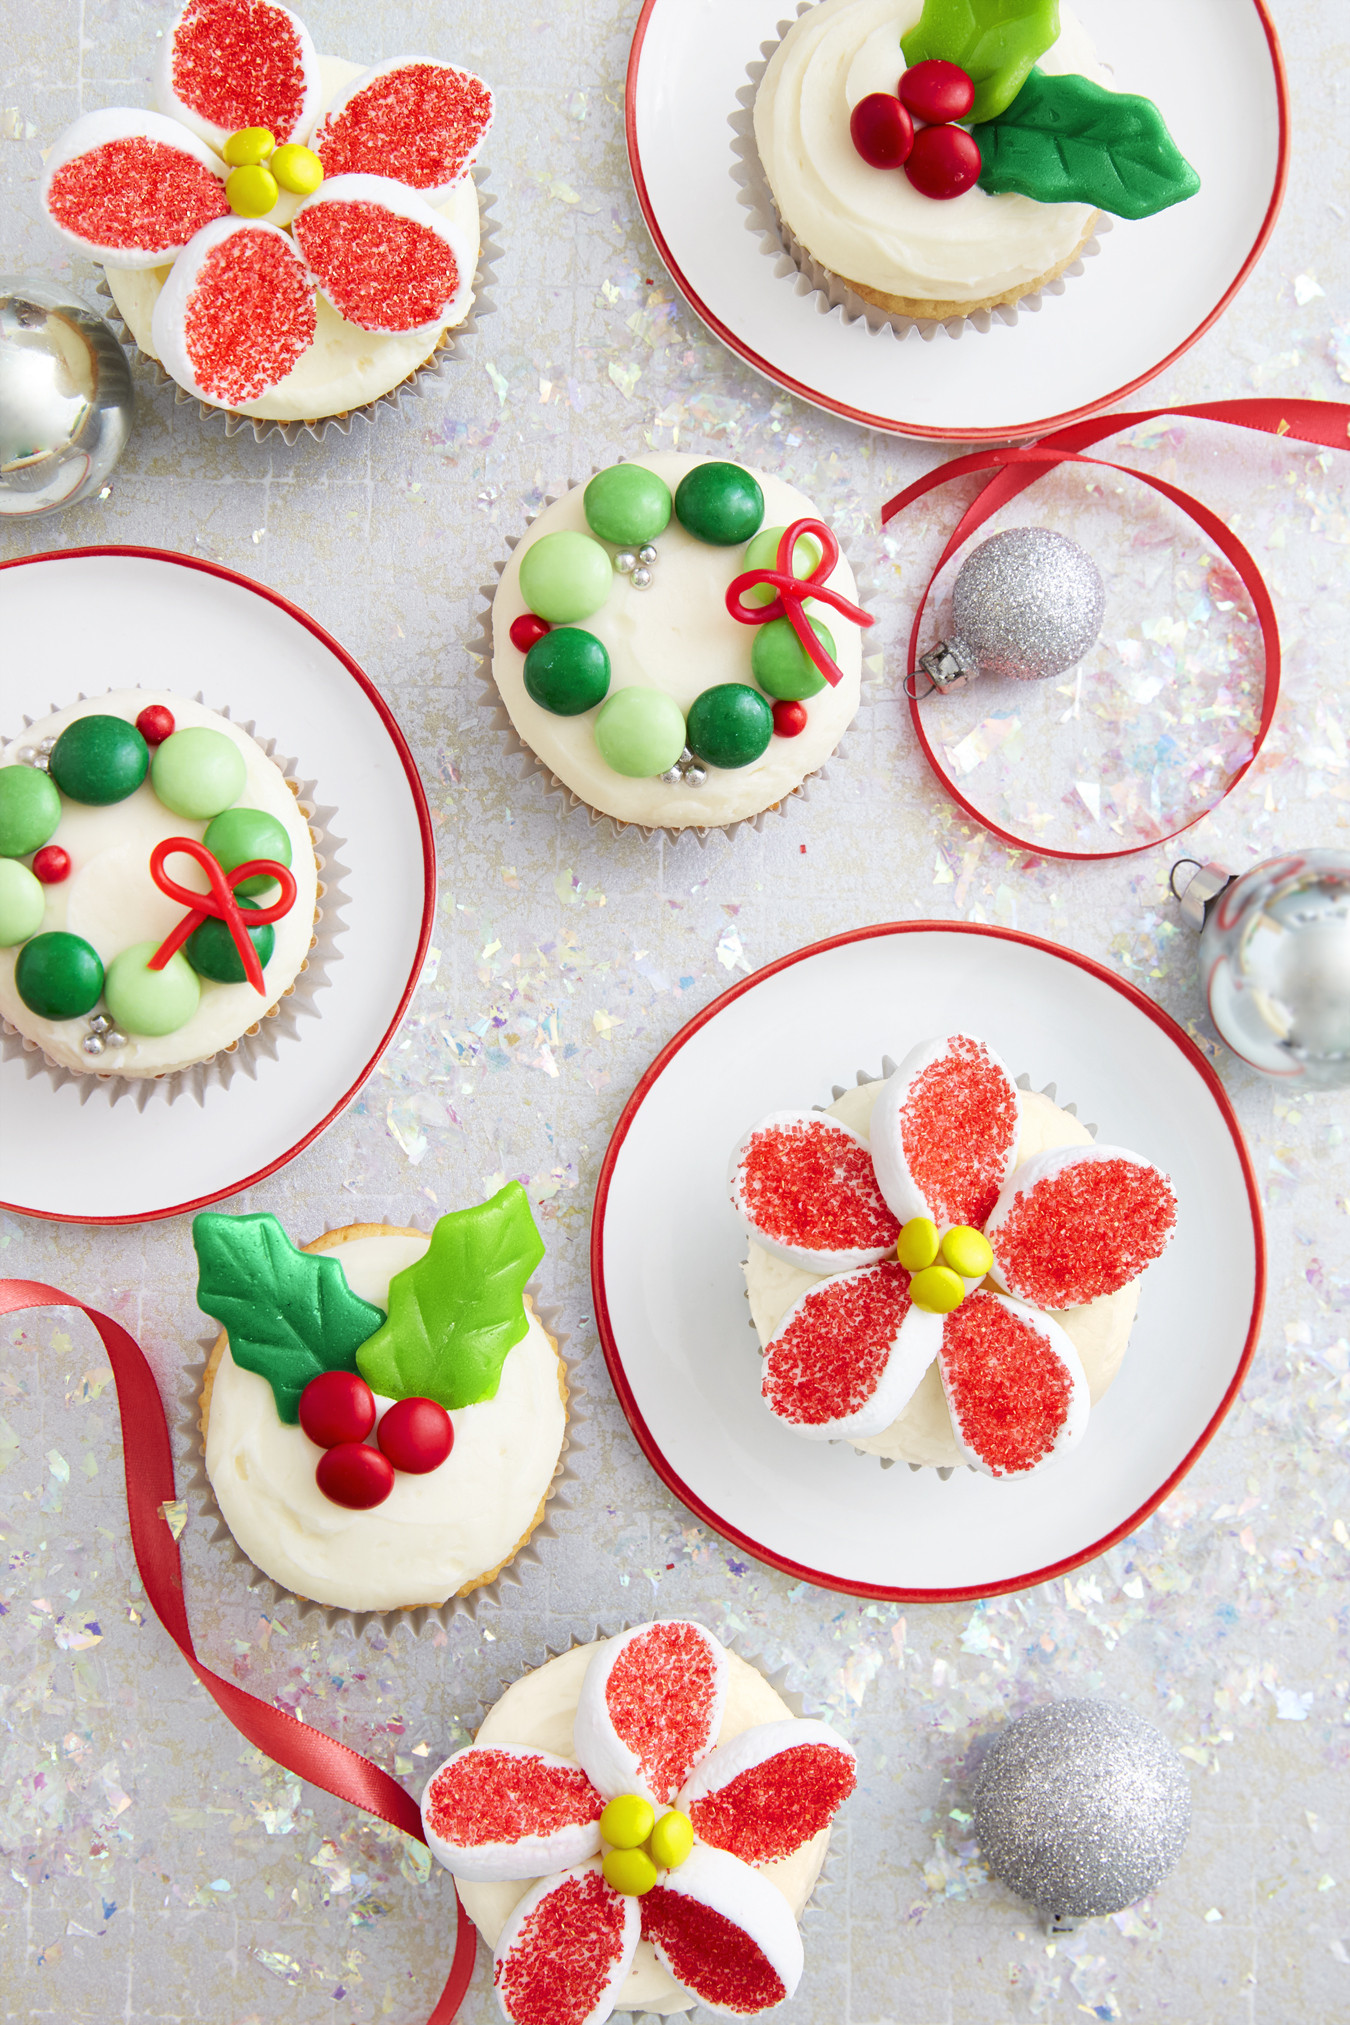 Christmas Pies And Cakes  Holiday Candy Cupcakes Recipe How To Make Christmas